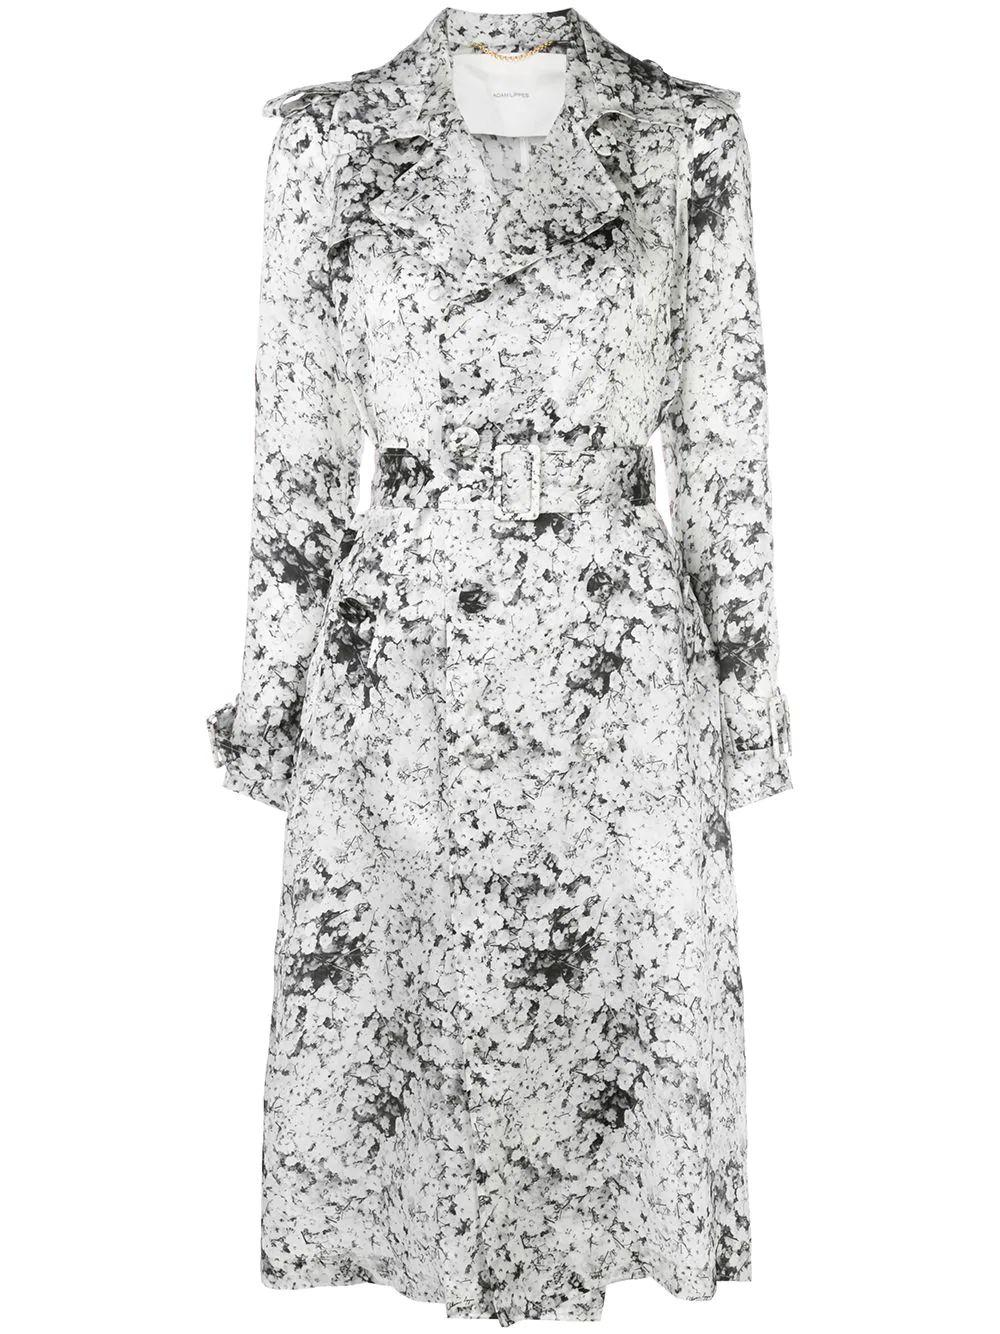 Baby's Breath Printed Trench